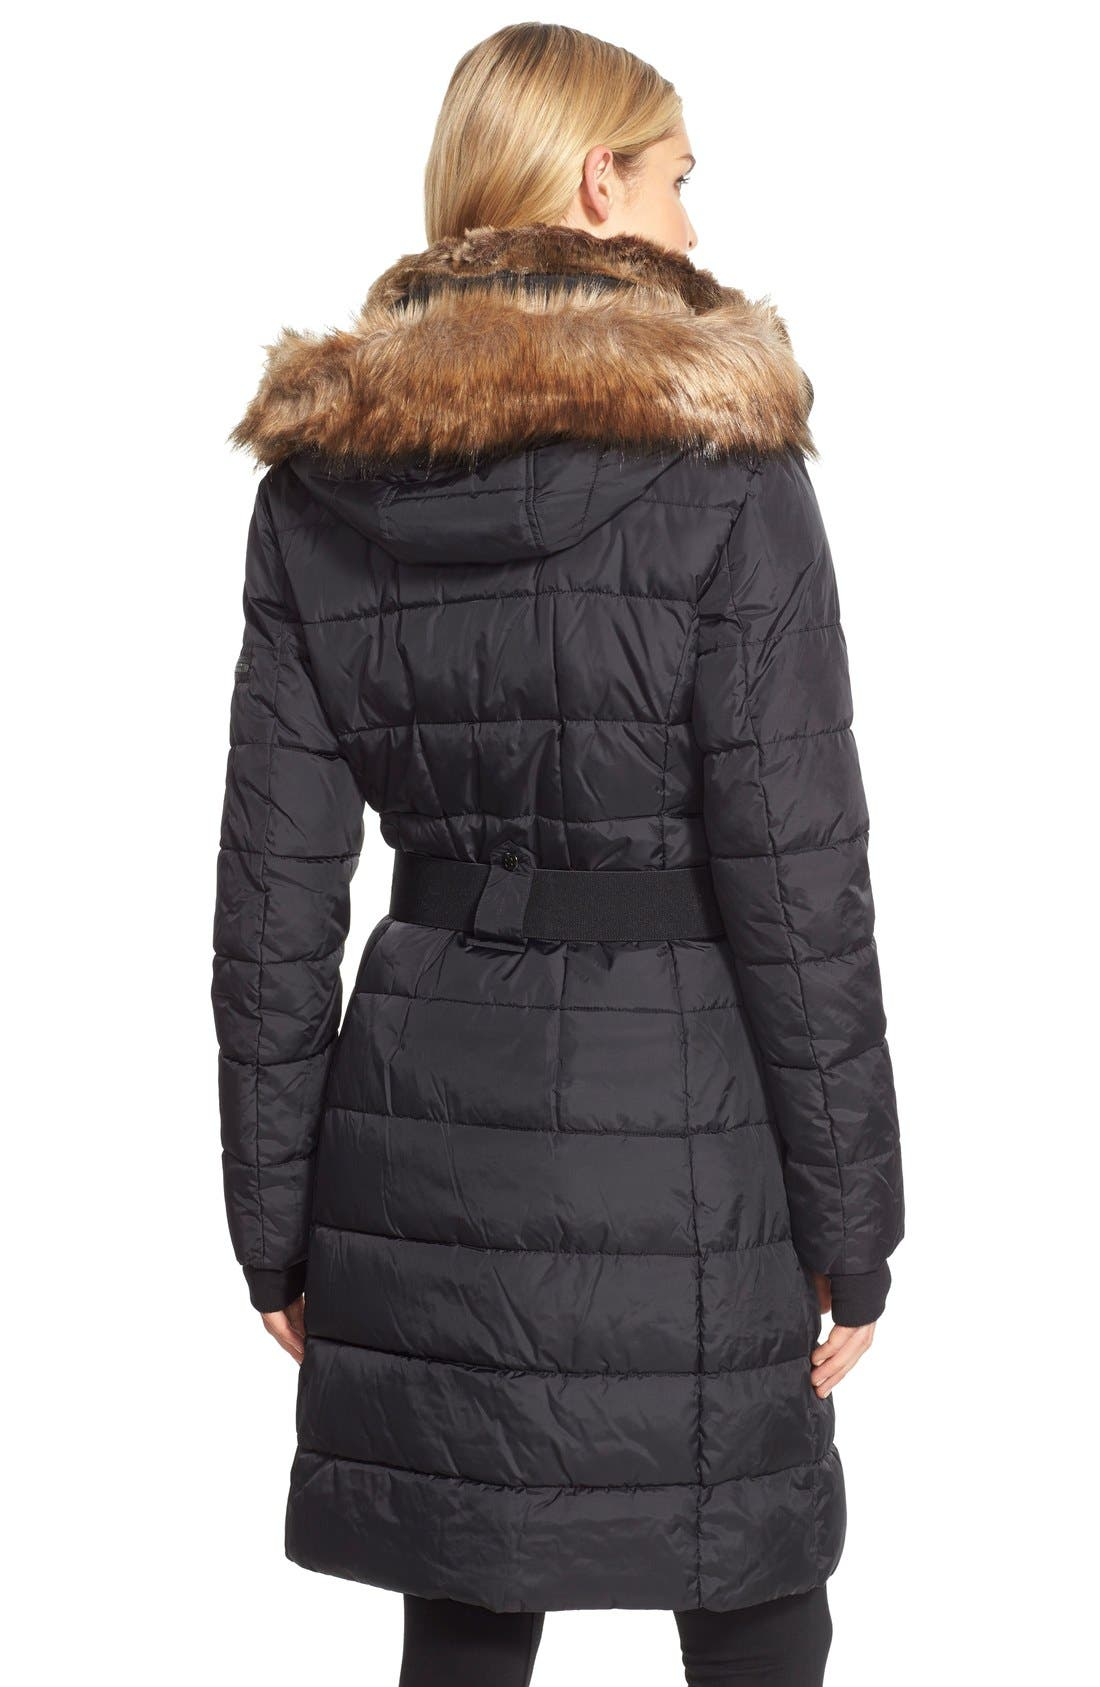 NYC 'Lexington' Faux Fur Trim Belted Hooded Long Quilted Coat,                             Alternate thumbnail 3, color,                             001